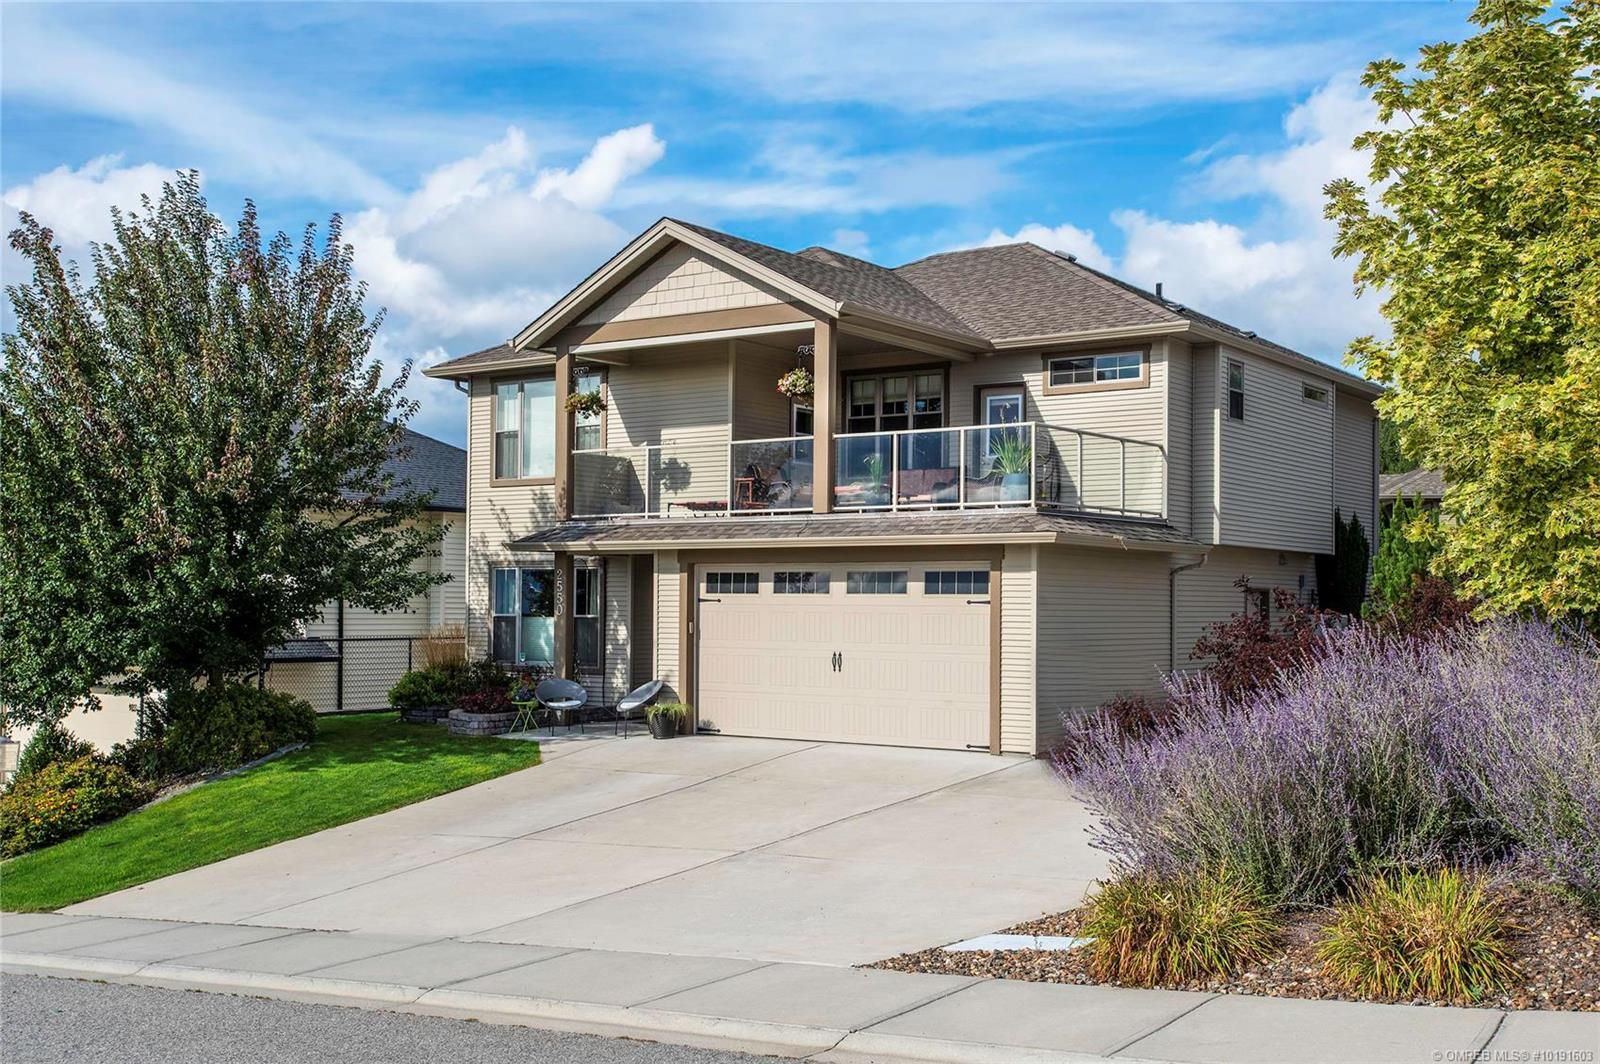 Removed: 2550 Copper Ridge Drive, West Kelowna, BC - Removed on 2019-12-07 04:18:18